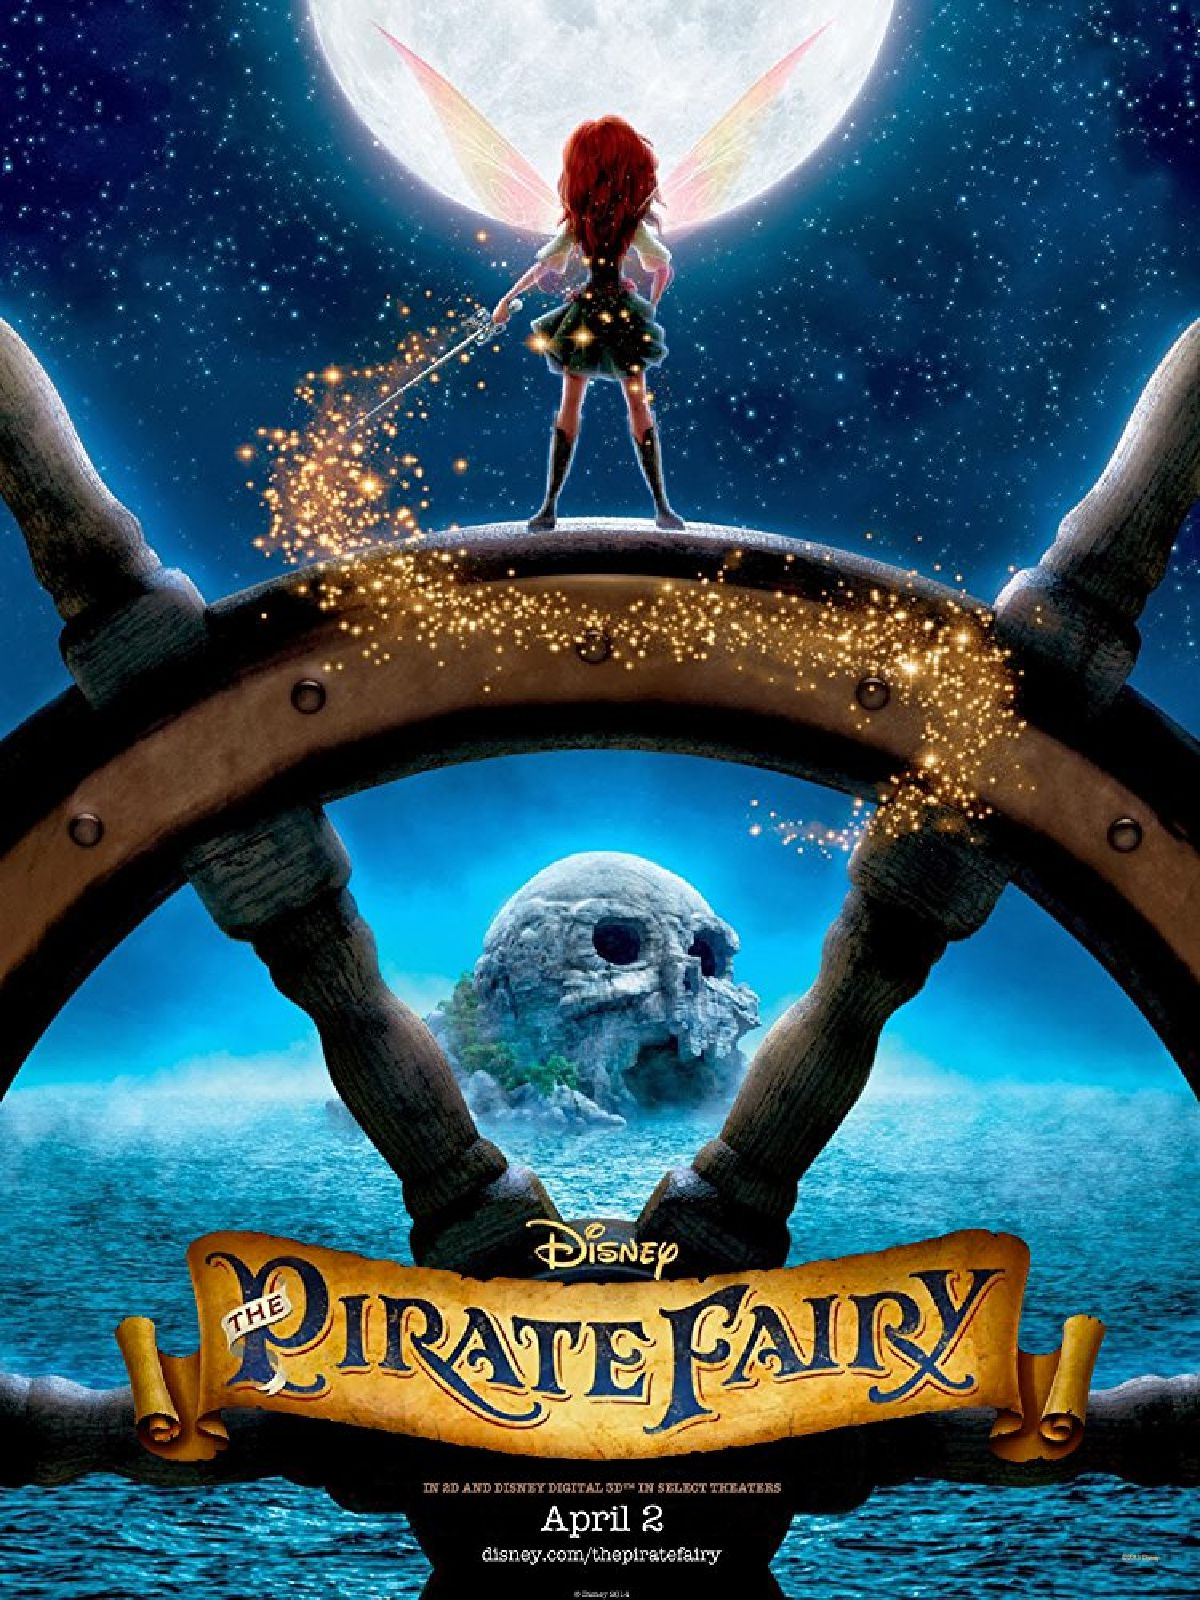 'Tinker Bell And The Pirate Fairy' movie poster